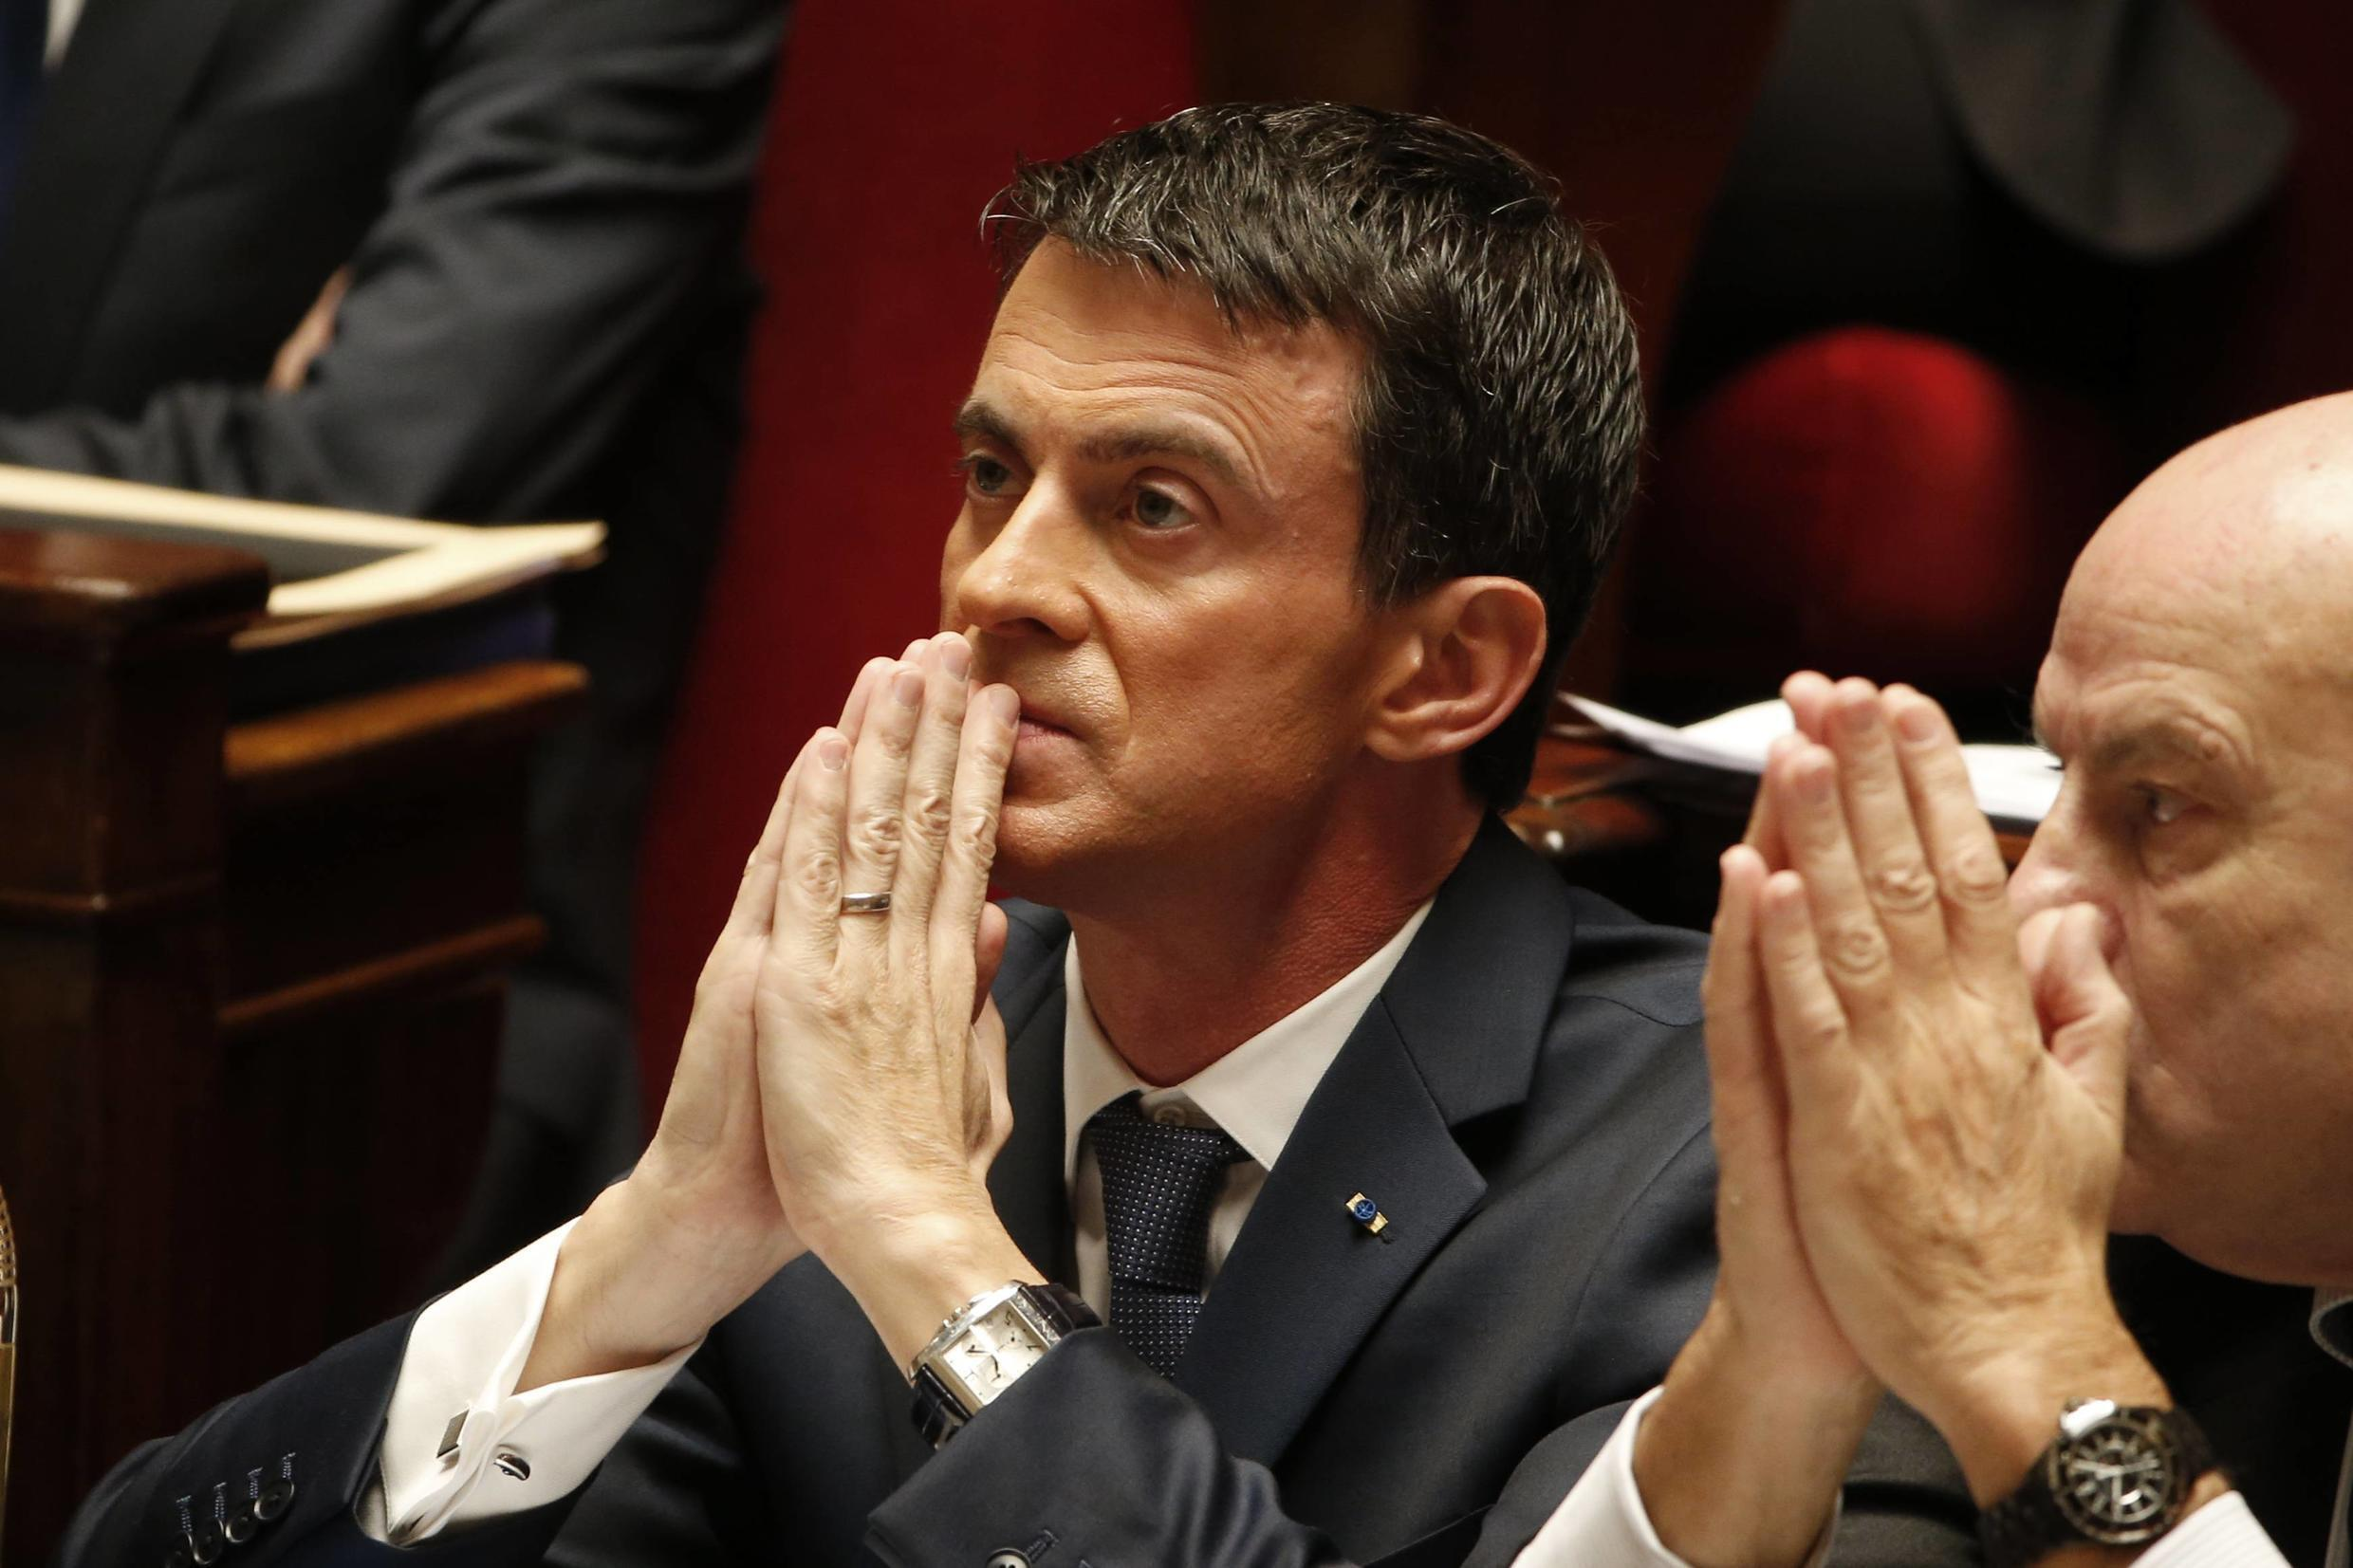 French Prime Minister Manuel Valls at the National Assembly in Paris, 19 November 2015.